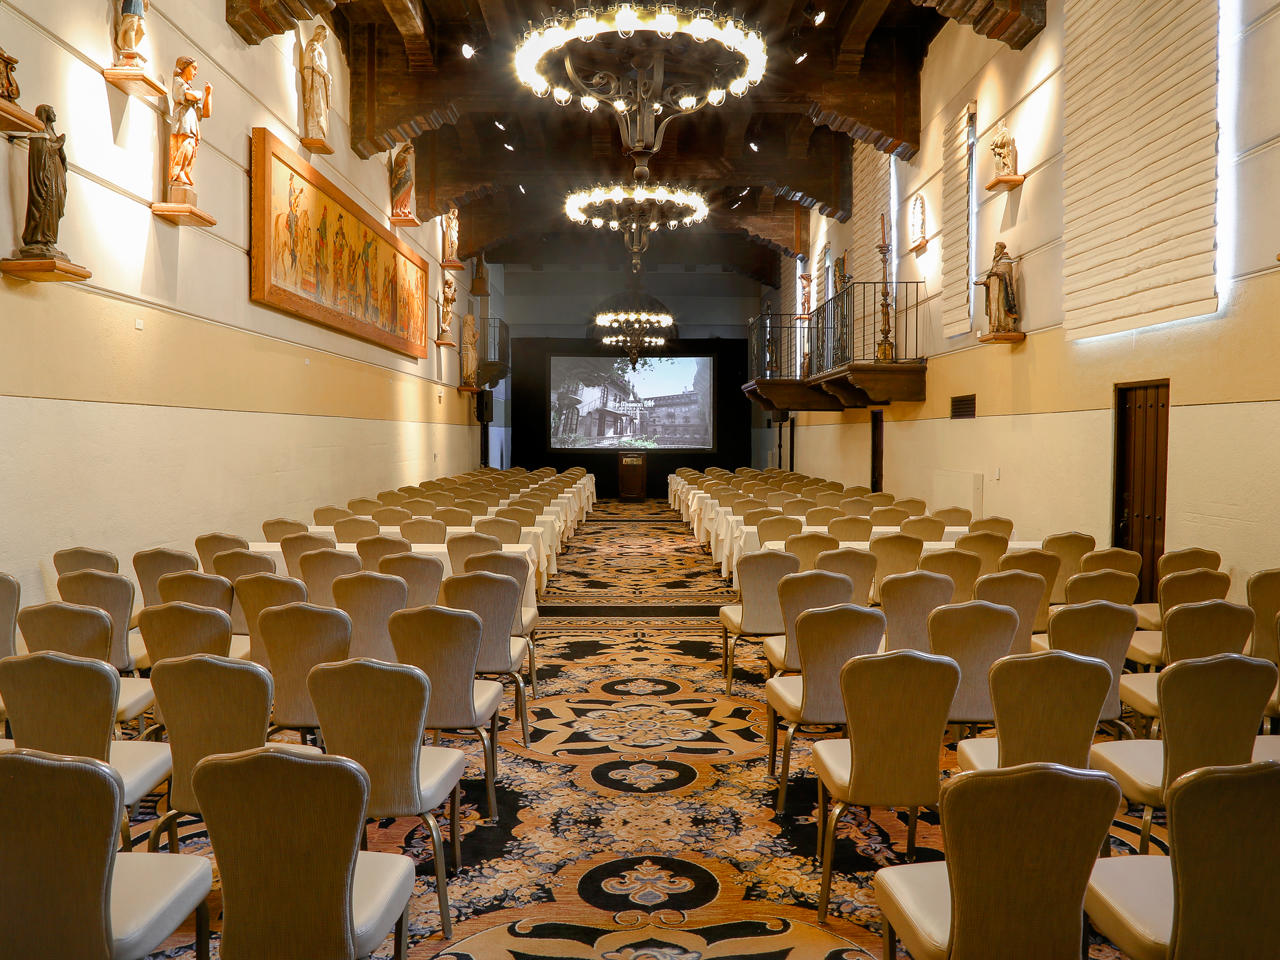 conference with large projection screen and chairs